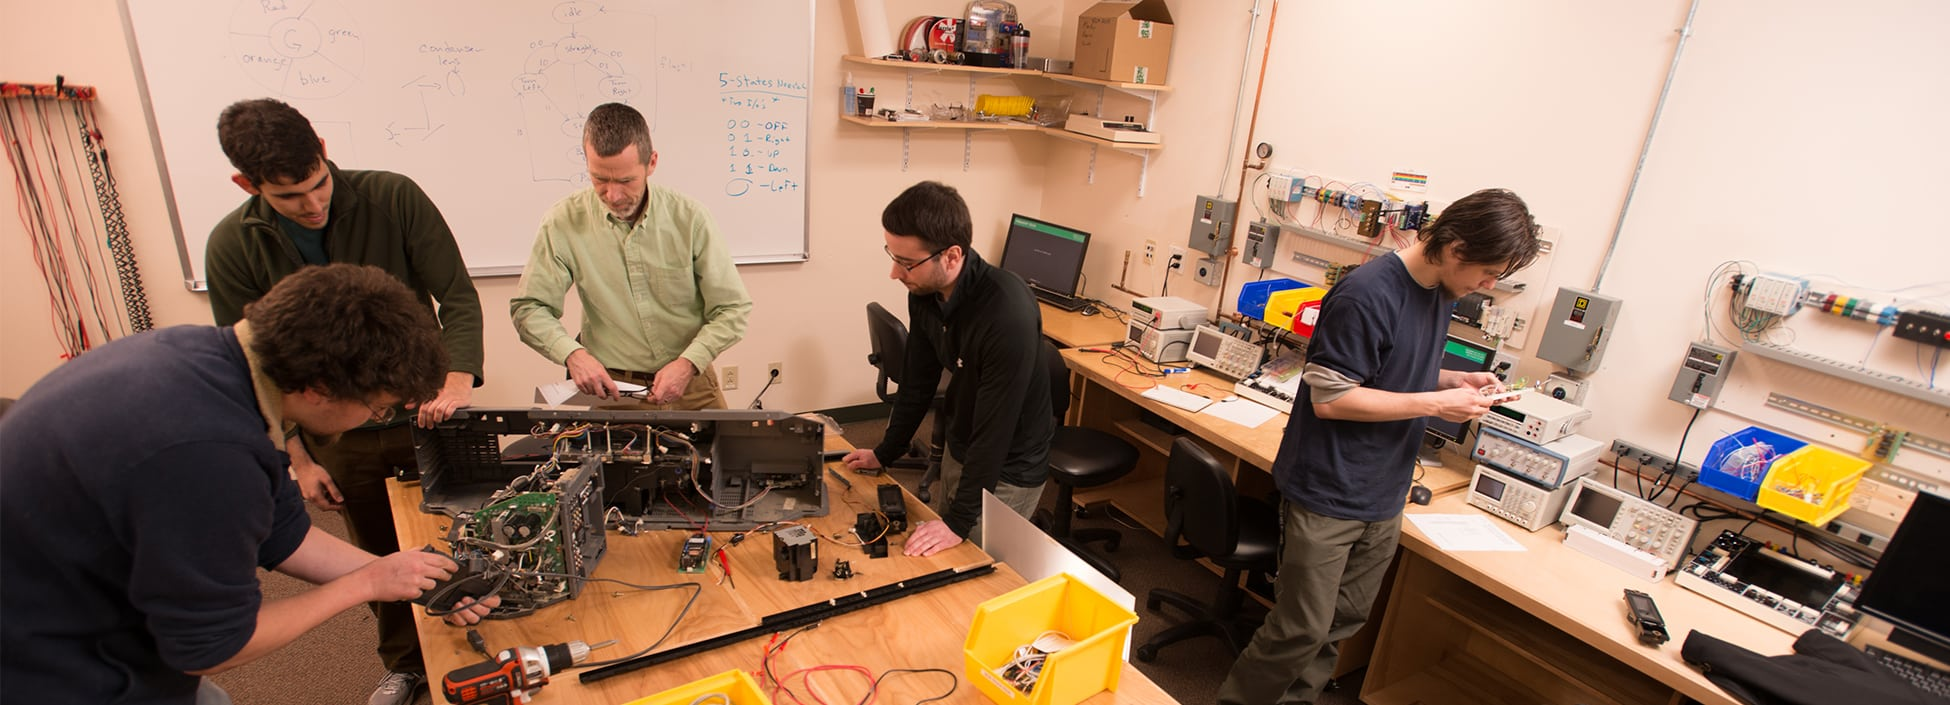 Students take apart a computer in the Computer Software Engineering lab, hands on